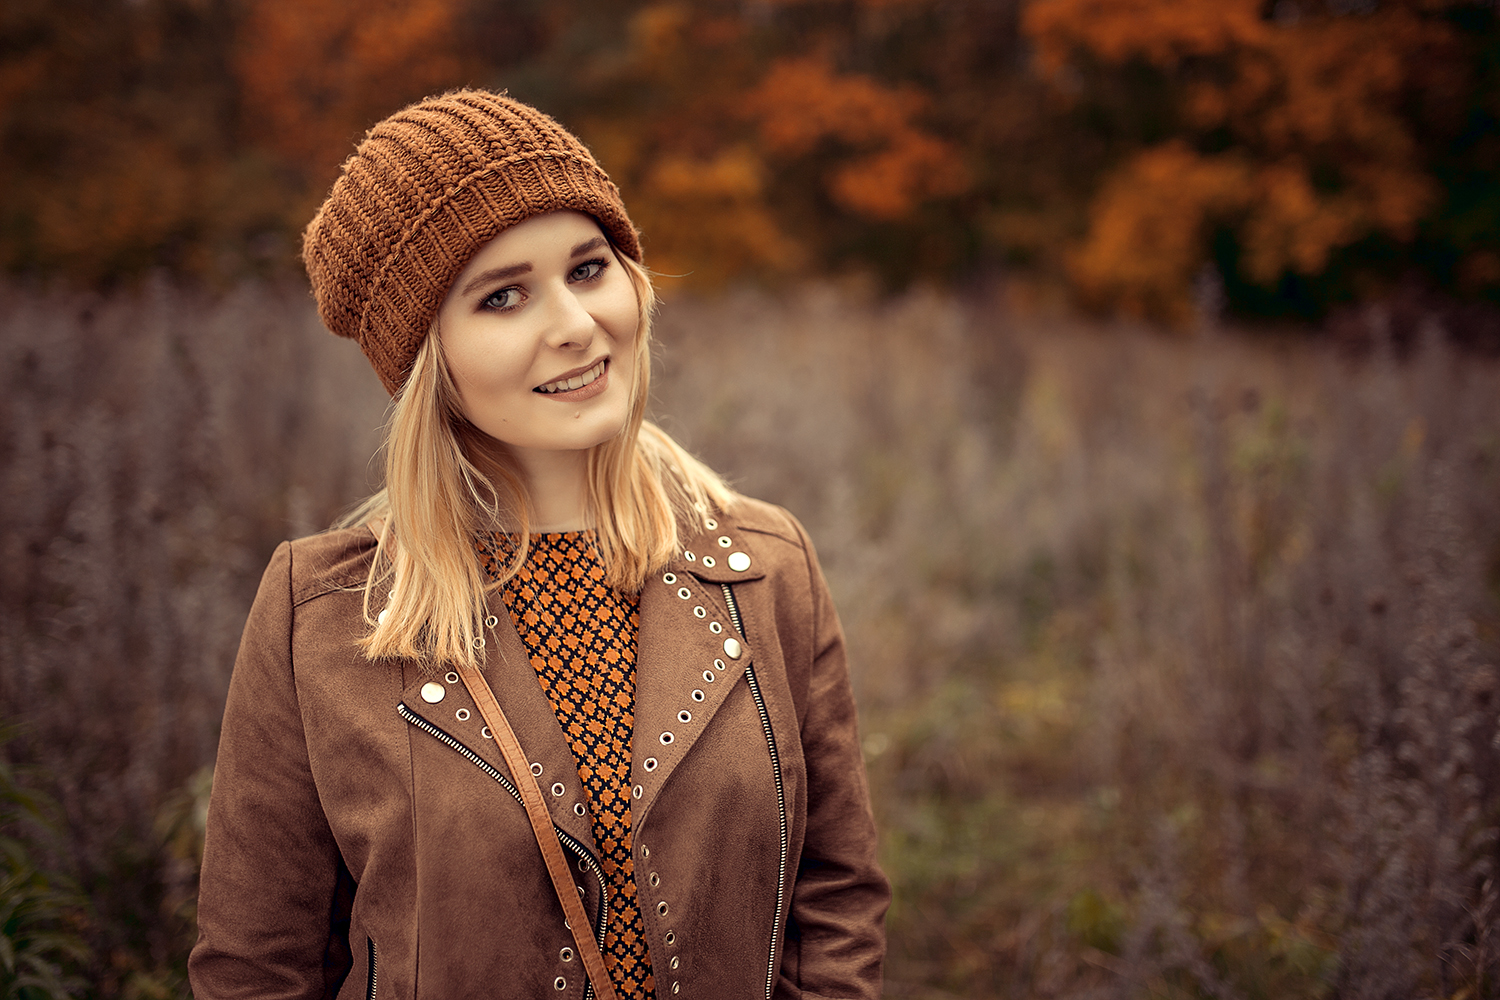 Warmes Herbst Outfit in braun